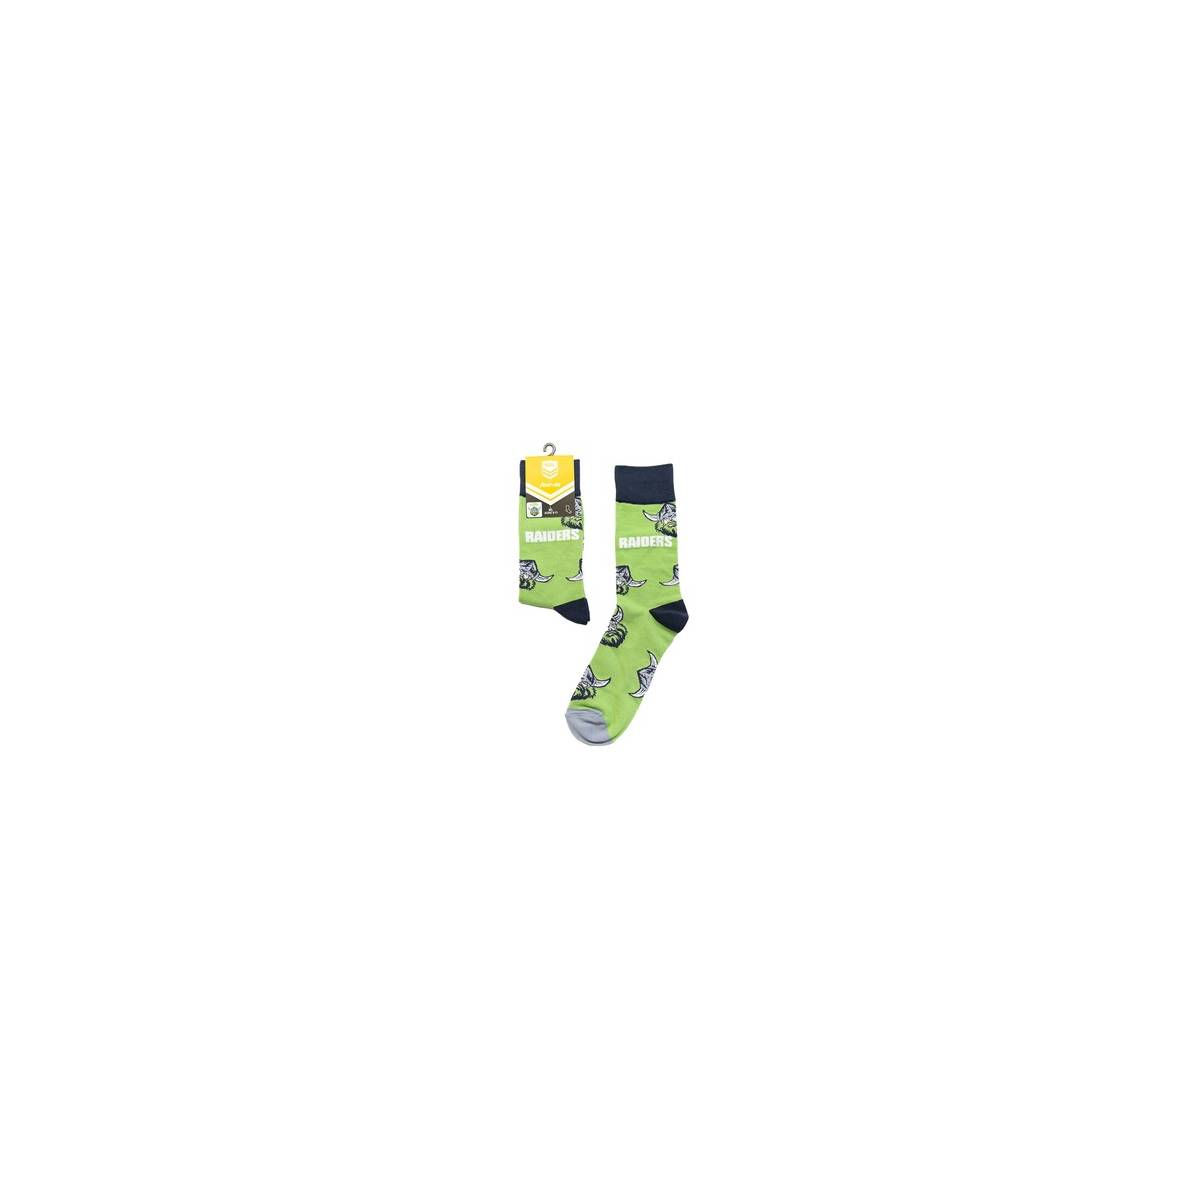 Canberra Medium Large Logos Sock0